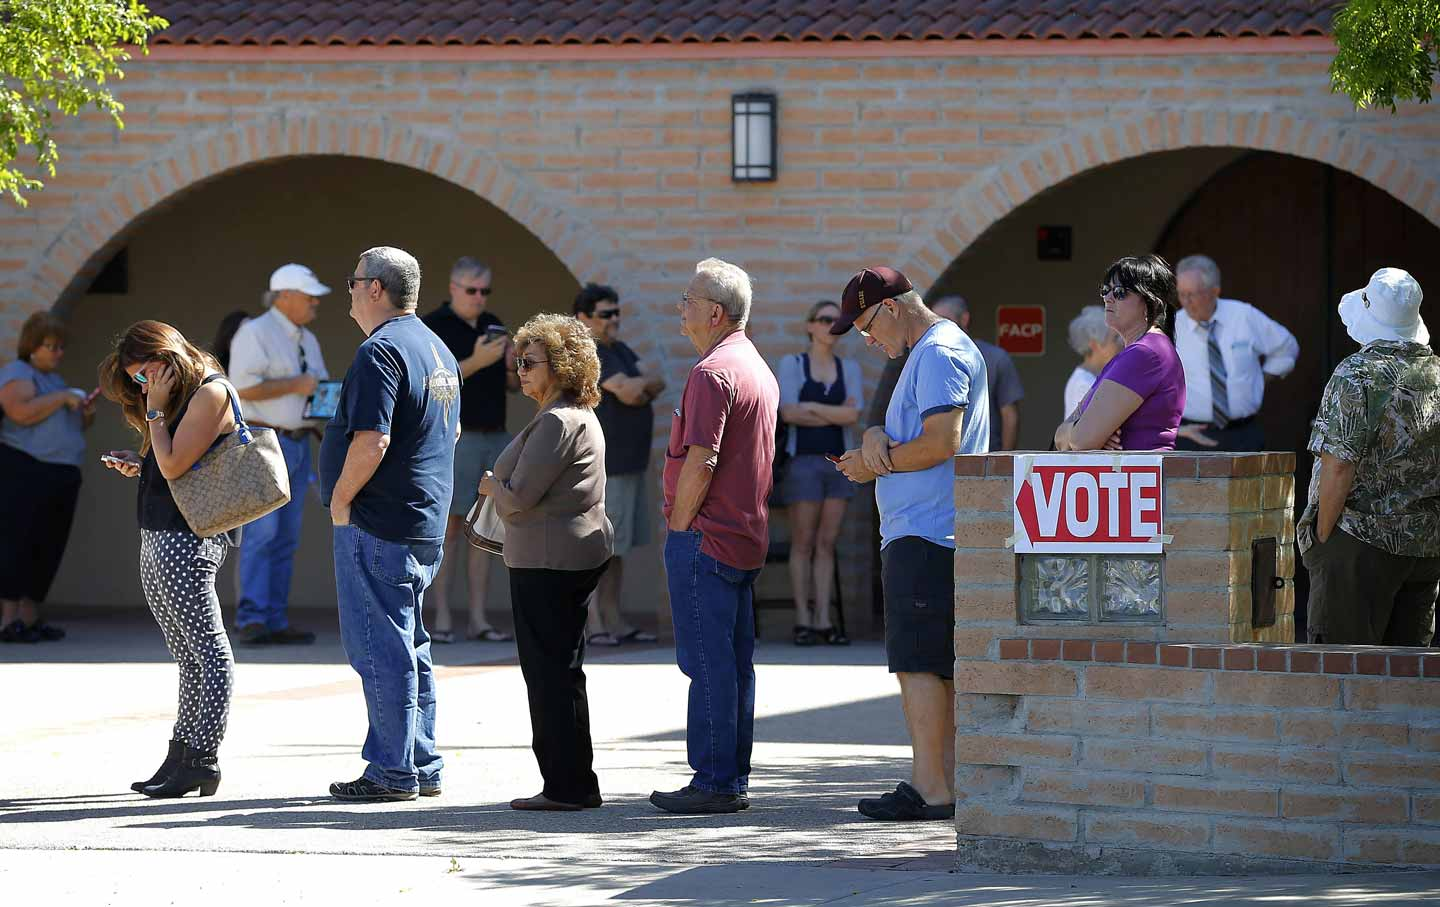 There Were 5-Hour Lines to Vote in Arizona Because the Supreme Court Gutted the Voting Rights Act